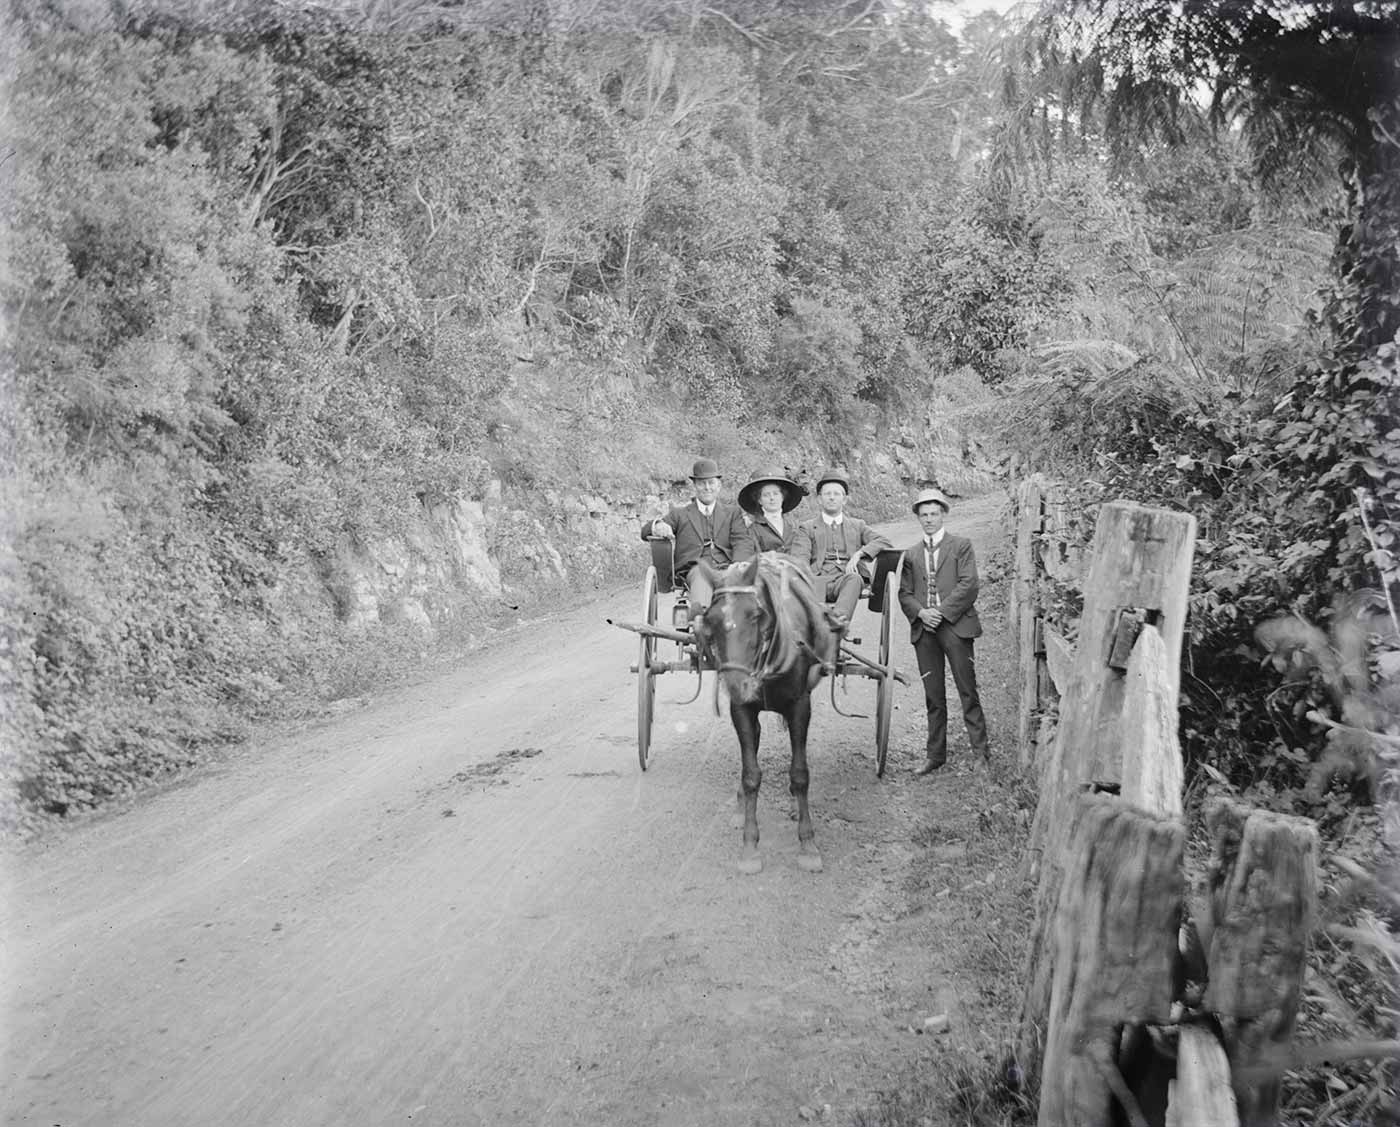 A photographic glass plate negative showing a horse-drawn buggy on a dirt road. There are two men and a woman wearing a large brimmed hat riding within the buggy, while another man is standing outside beside one wheel. All the men are wearing three-piece suits and hats. - click to view larger image